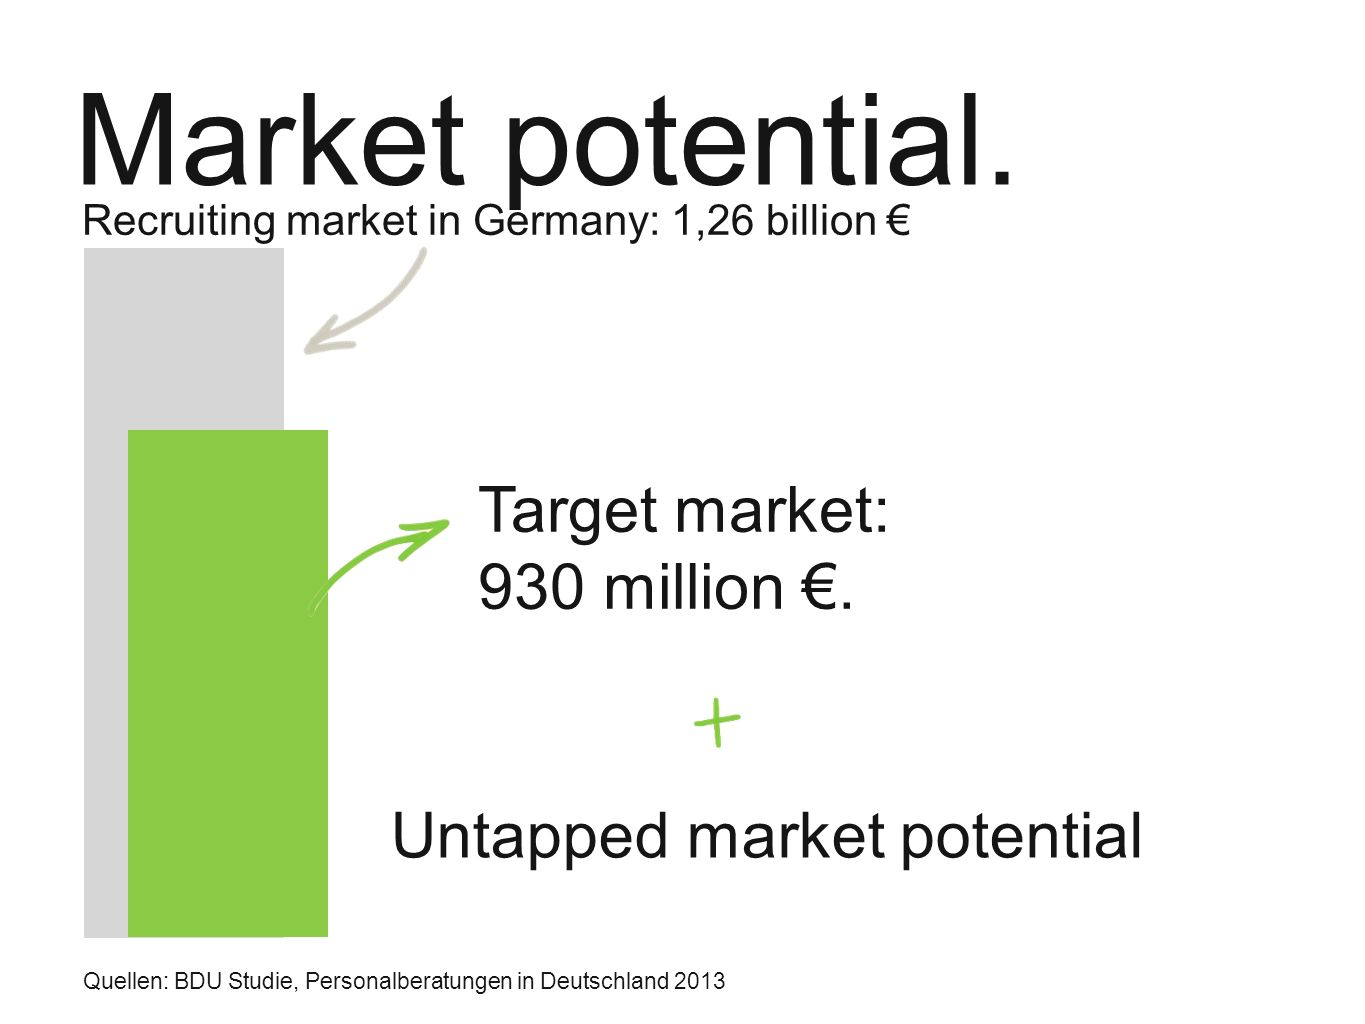 Market potential. Recruiting market in Germany: 1,26 billion € Target market: 930 million €.